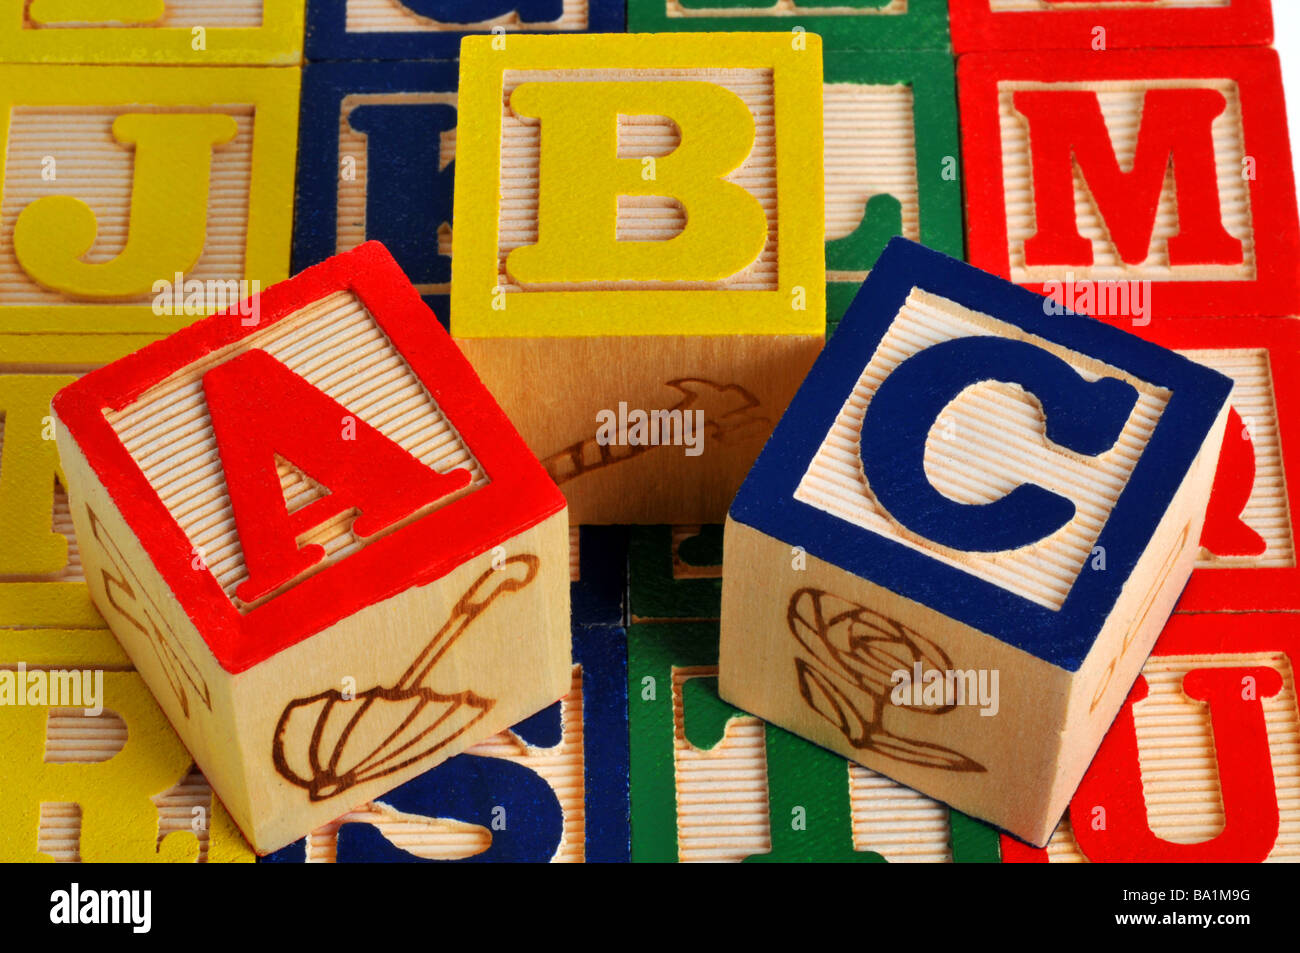 ABC alphabet blocks en bois Photo Stock